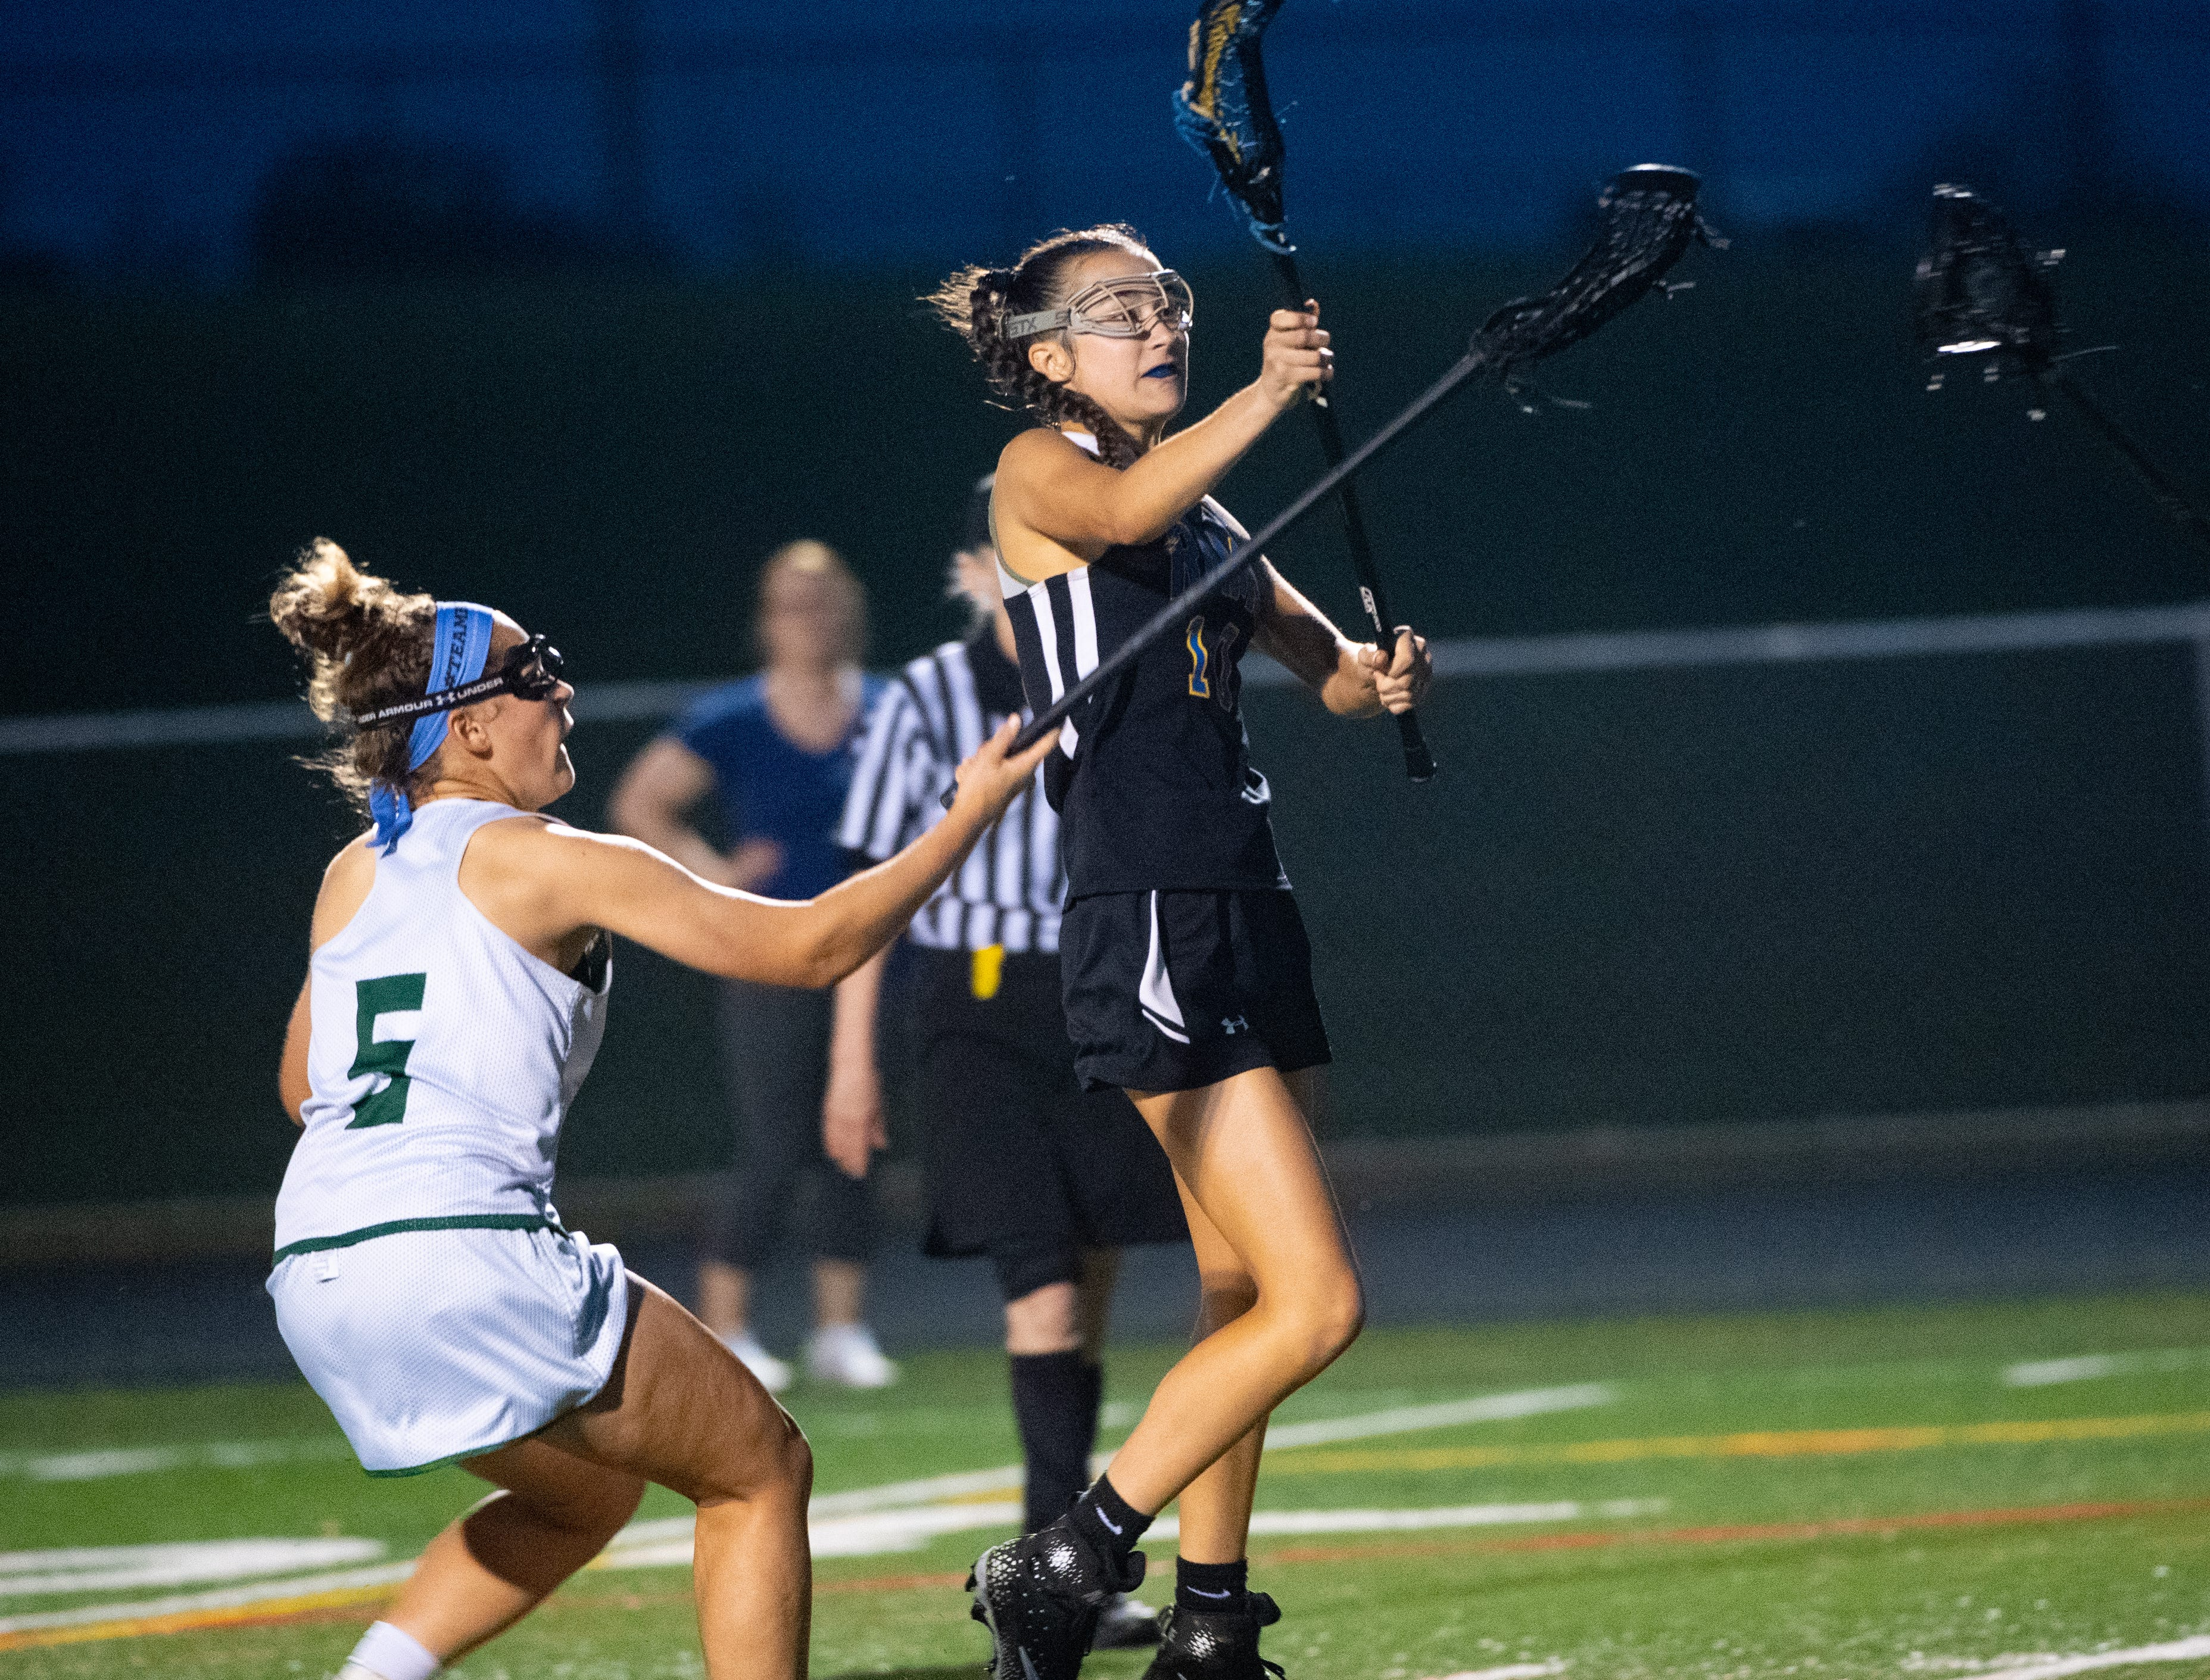 Amelie Gamache (10) passes during the YAIAA girls lacrosse championship game between York Catholic and Kennard-Dale, May 10, 2019 at Eastern York High School. The Rams defeated the Fighting Irish 11 to 10.